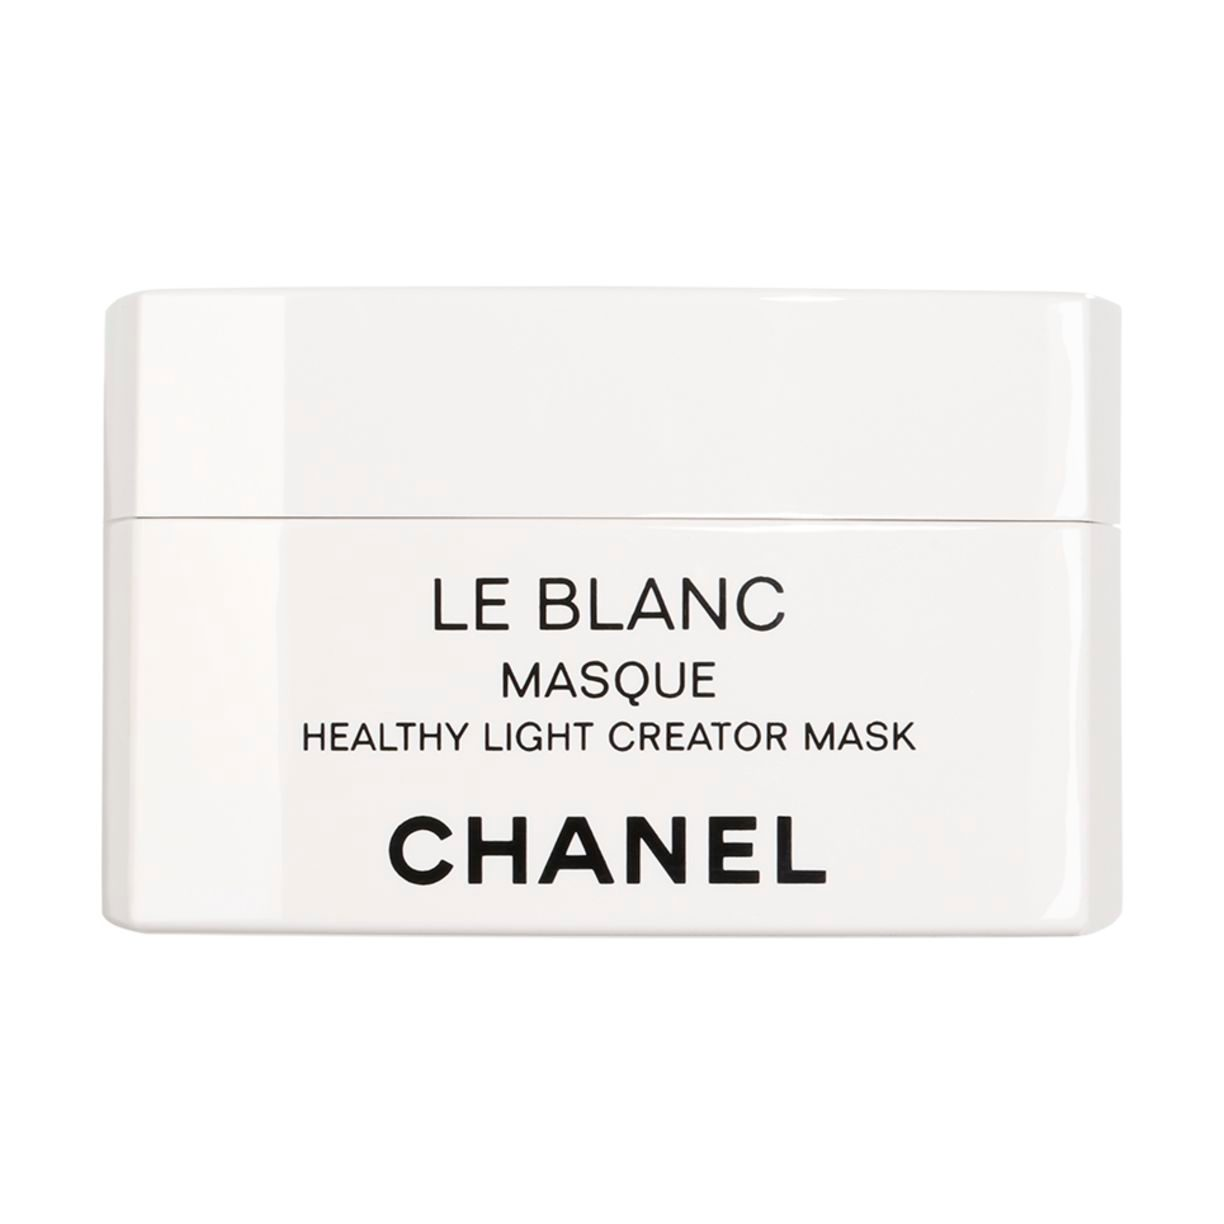 LE BLANC MASQUE HEALTHY LIGHT CREATOR MASK REVITALIZANTE - ILUMINADORA - REPARADORA